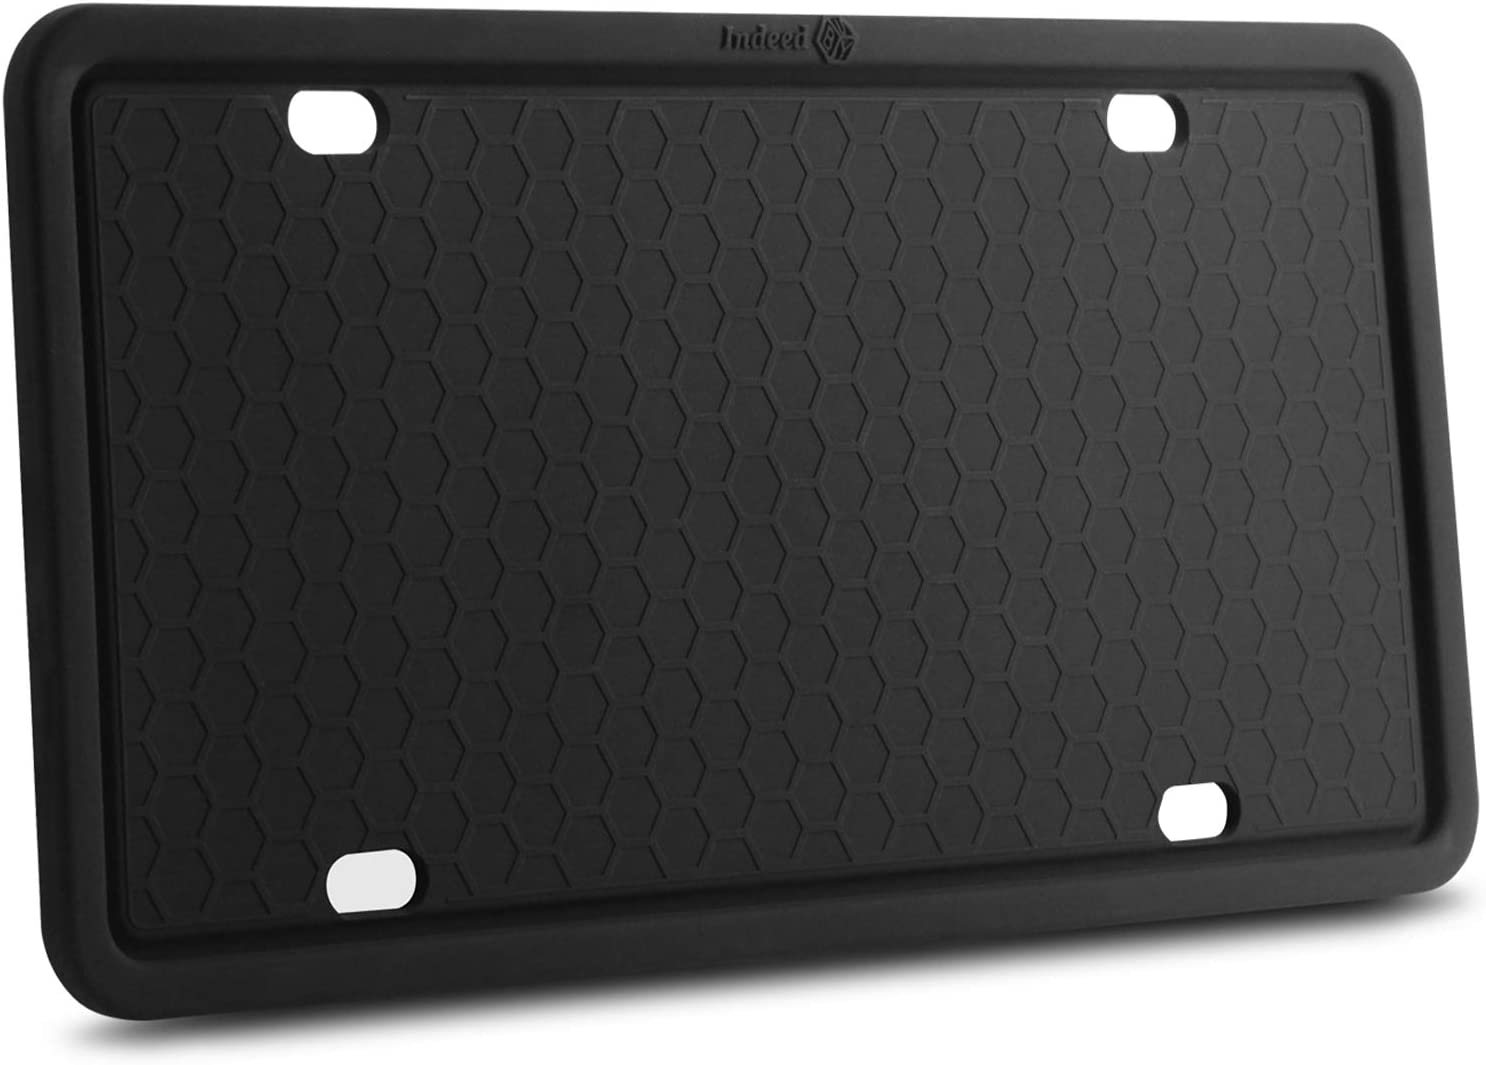 Premium Universal Car License Plate Holder with Drainage Holes Rust-Proof Weather-Proof and Rattle-Proof License Plate Frame for Car Modern Fluorescence White Silicone License Plate Frame